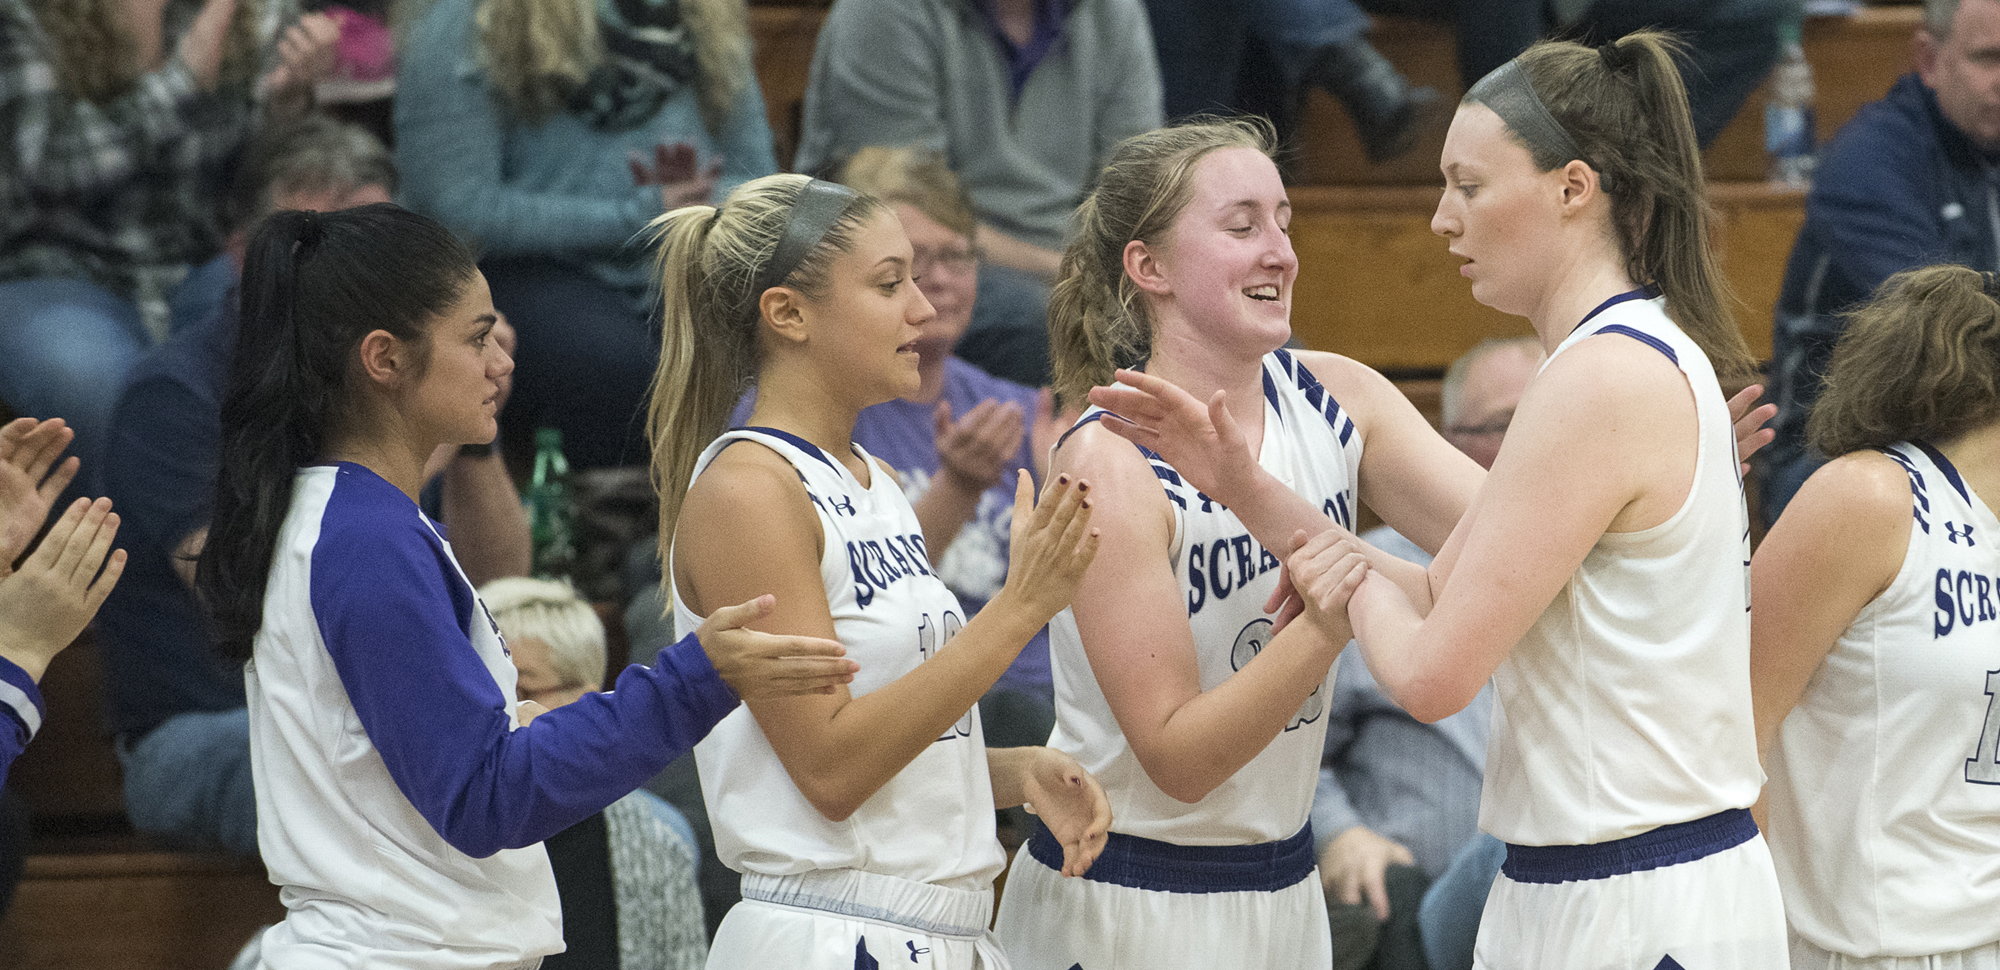 Scranton will host the first two rounds of the NCAA Division III Women's Basketball Tournament this weekend in the John Long Center.